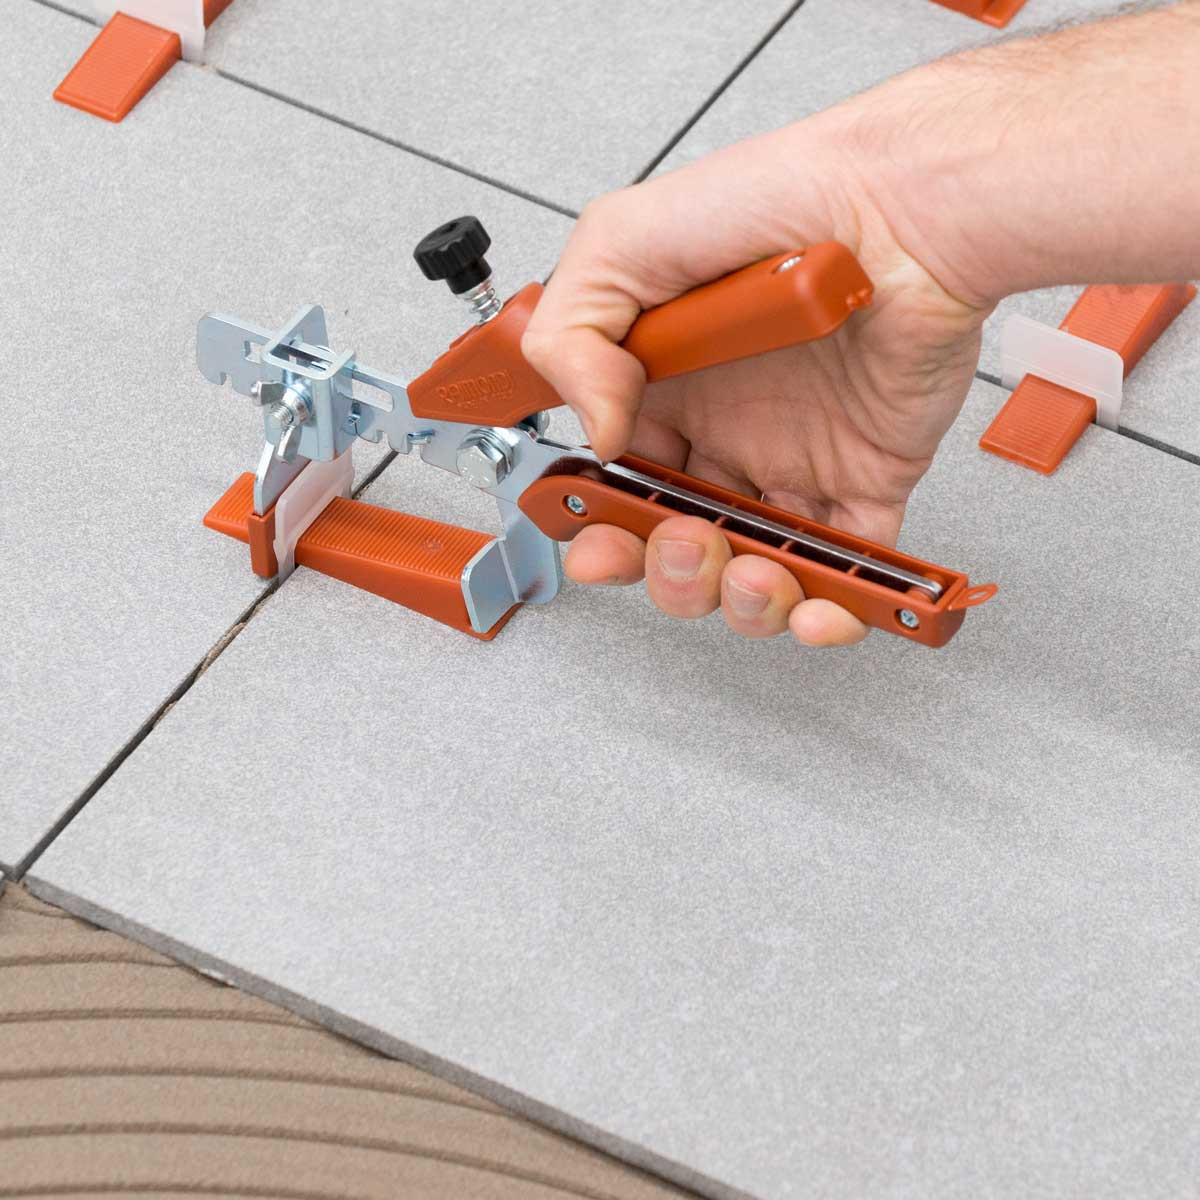 raimondi leveling system using floor plier